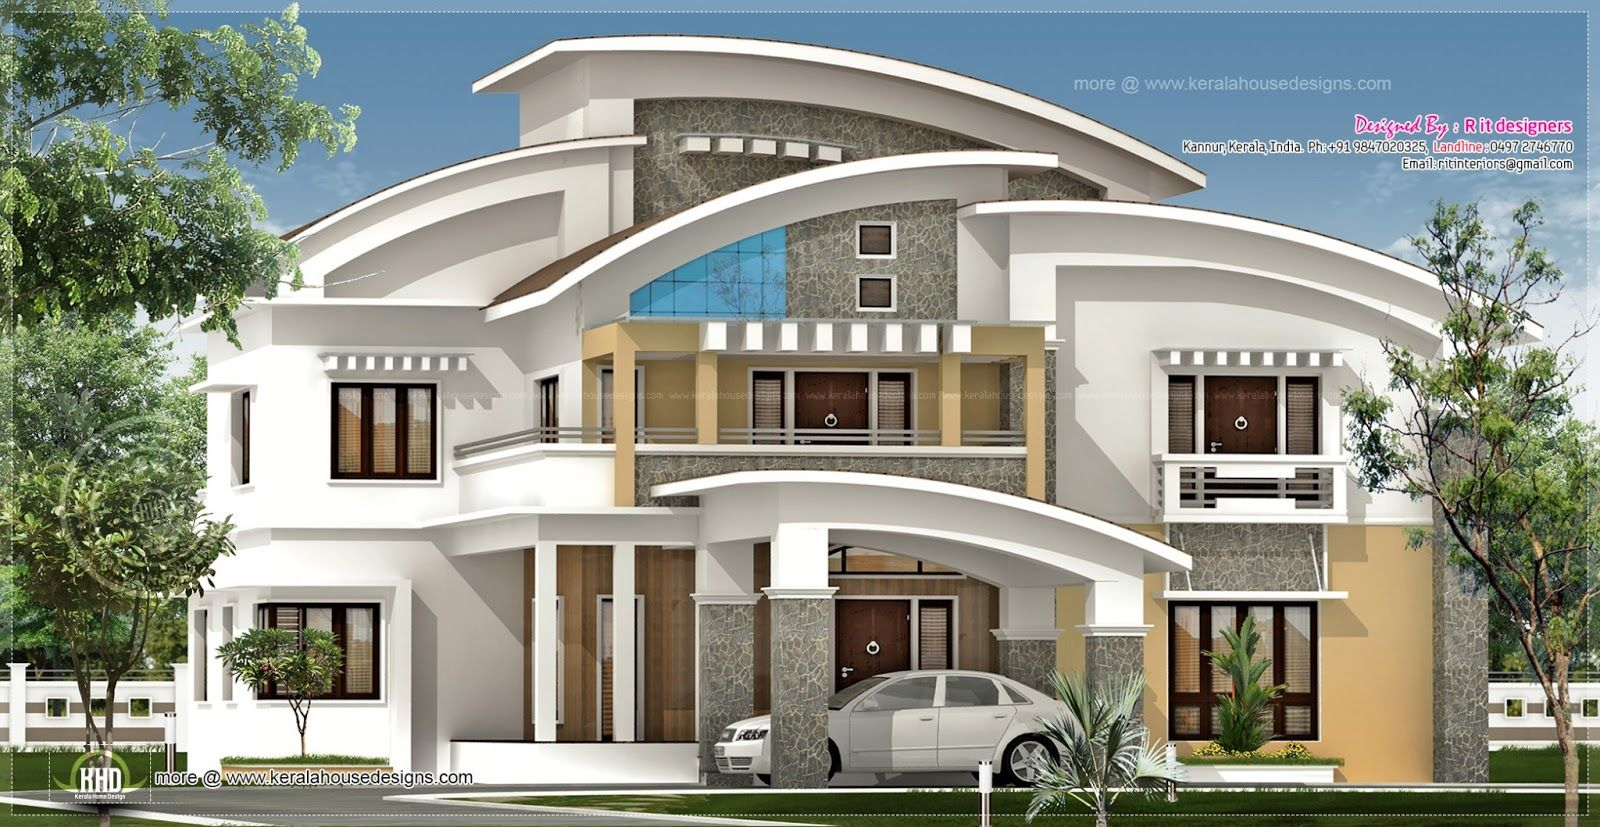 Awesome luxury homes plans 8 french country luxury home for Home exterior designs